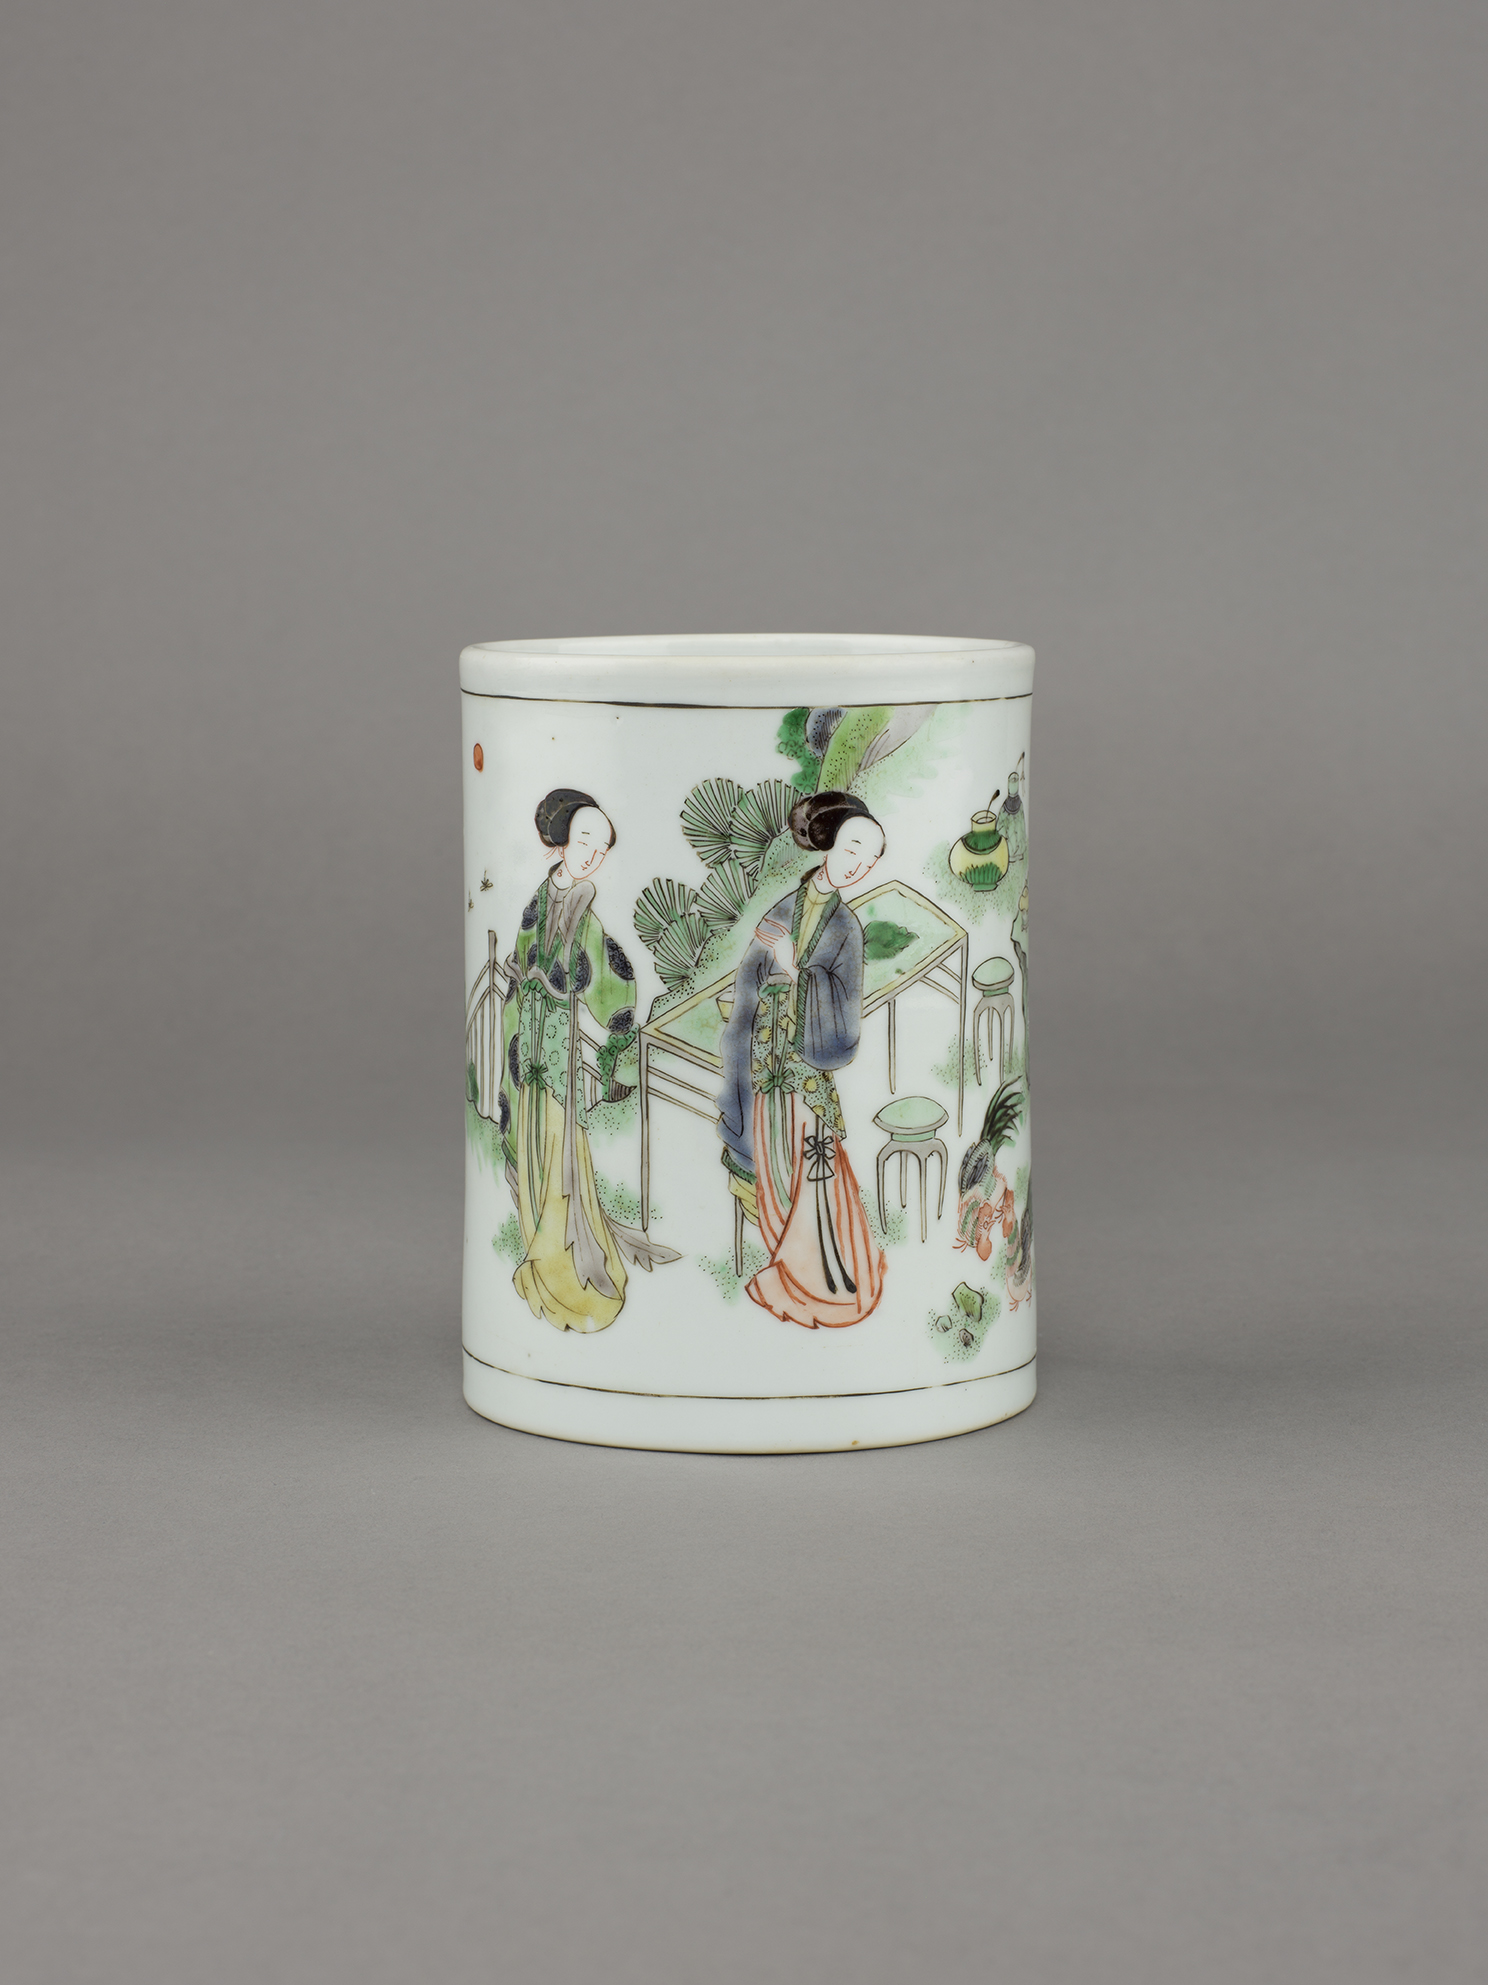 no. 18 - Chinese porcelain famille verte, wucai brush pot, bitong, with two panels; one with two elegant ladies standing beside a pair of chickens, next to a table and stools in a fenced landscape scene. 5 ¼ inches, 13.4 cm high; 4 inches, 10.2 cm diameter. Kangxi, 1662-1722.